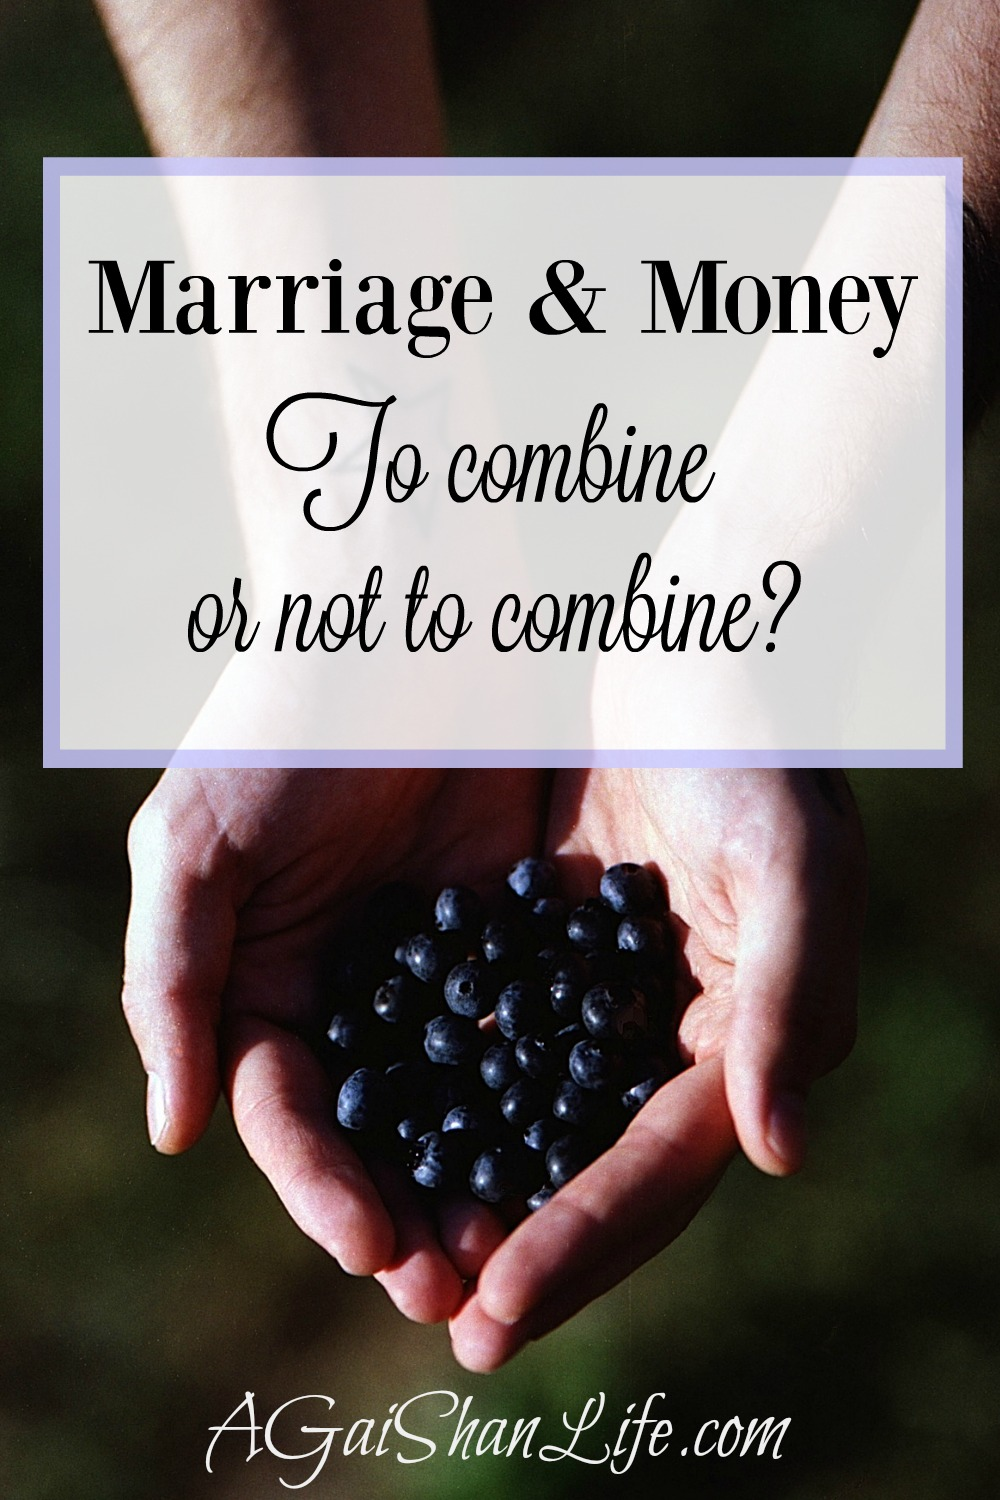 In our marriage, our finances are 99% combined. How would you do it?